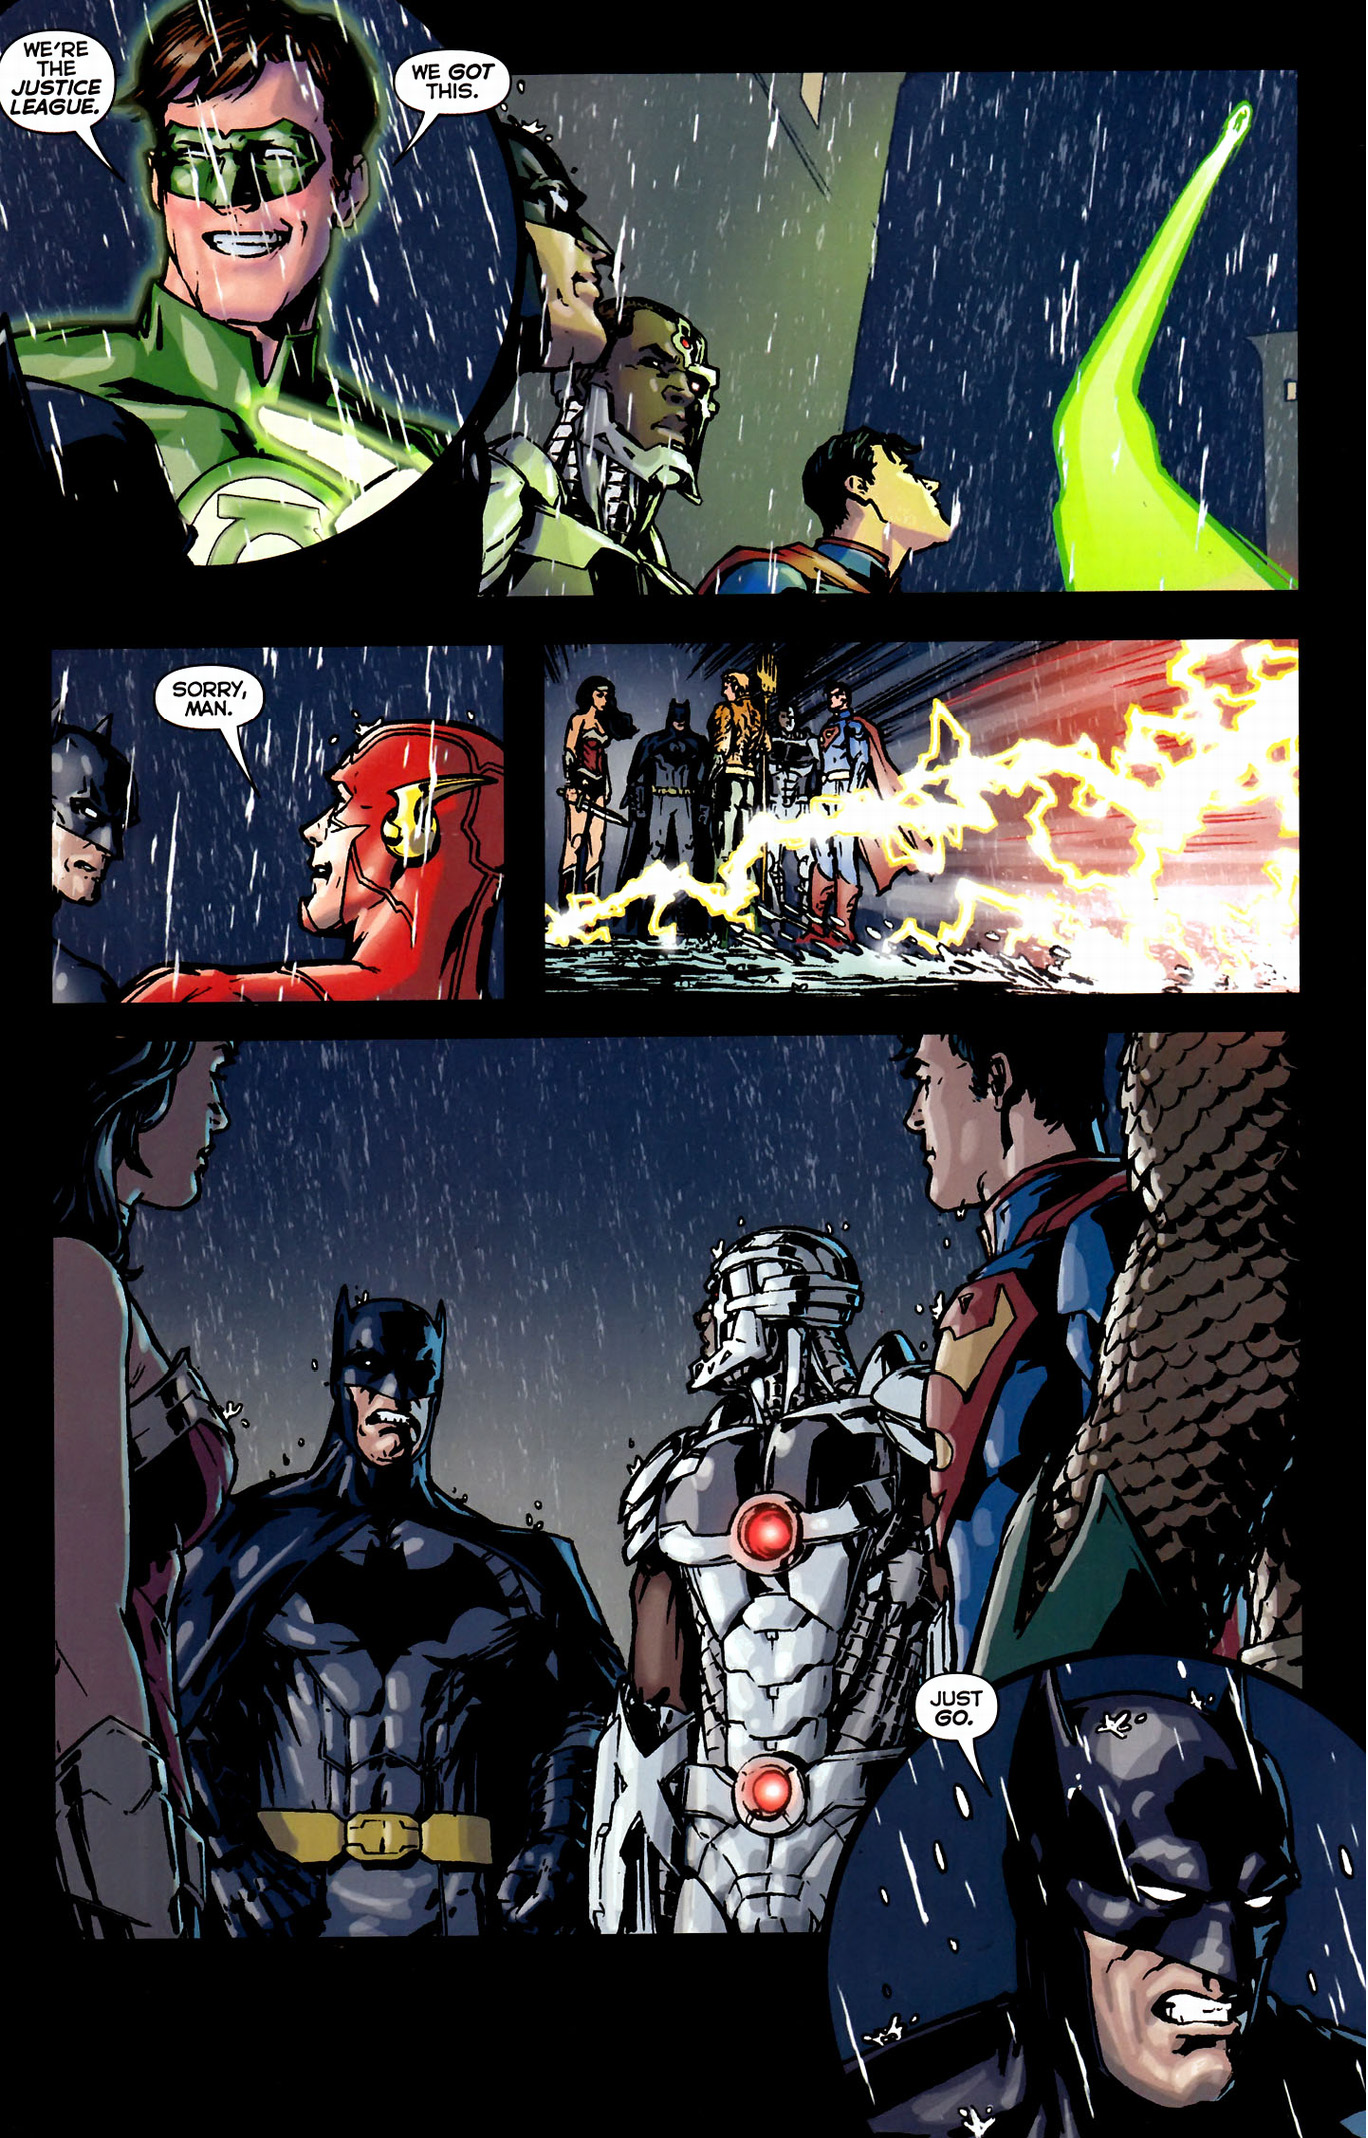 green lantern taunting batman